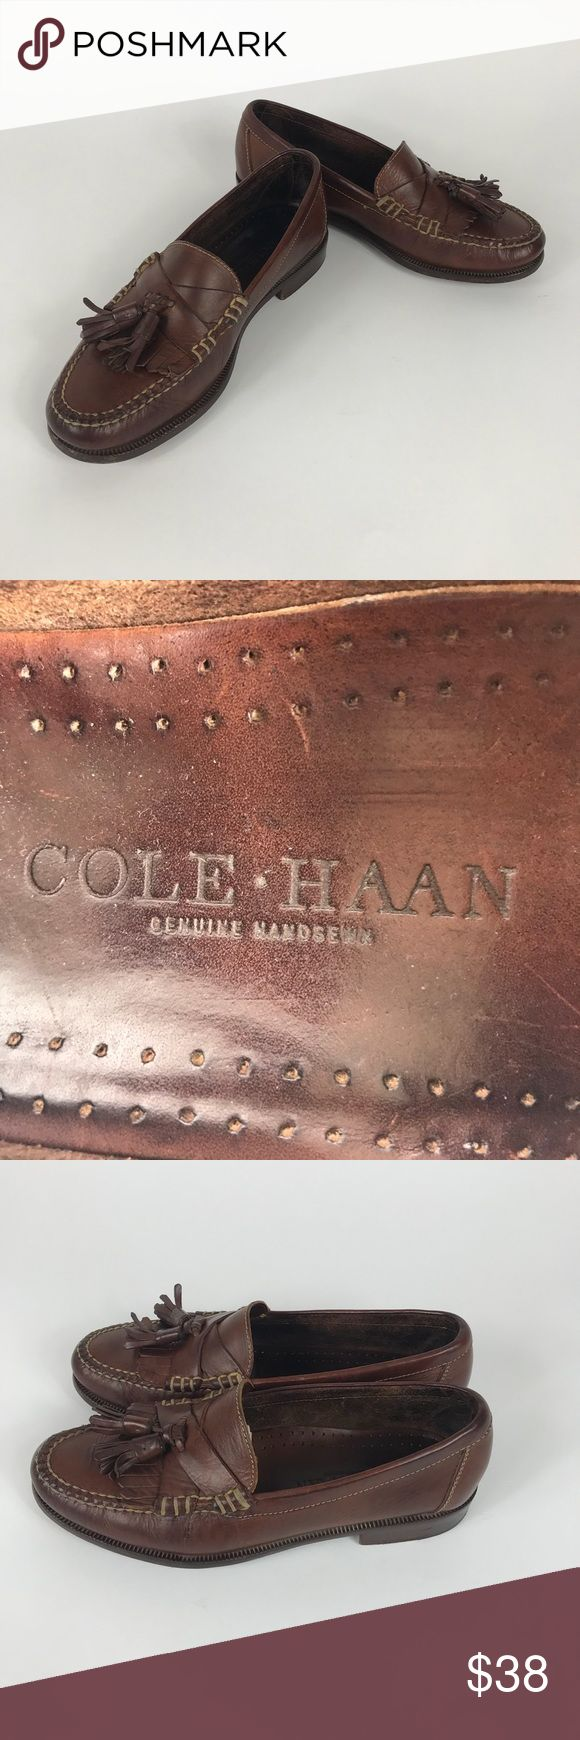 Cole Haan 7.5 M Handsewn Brown Tassel Loafers Good condition pre owed Cole Haan Handsewn Tassel Loafers! Men's size 7.5 M. Pick these up at 1/4 the price of new!  Thanks for looking and please check out my other Cole Haan shoes! Cole Haan Shoes Loafers & Slip-Ons